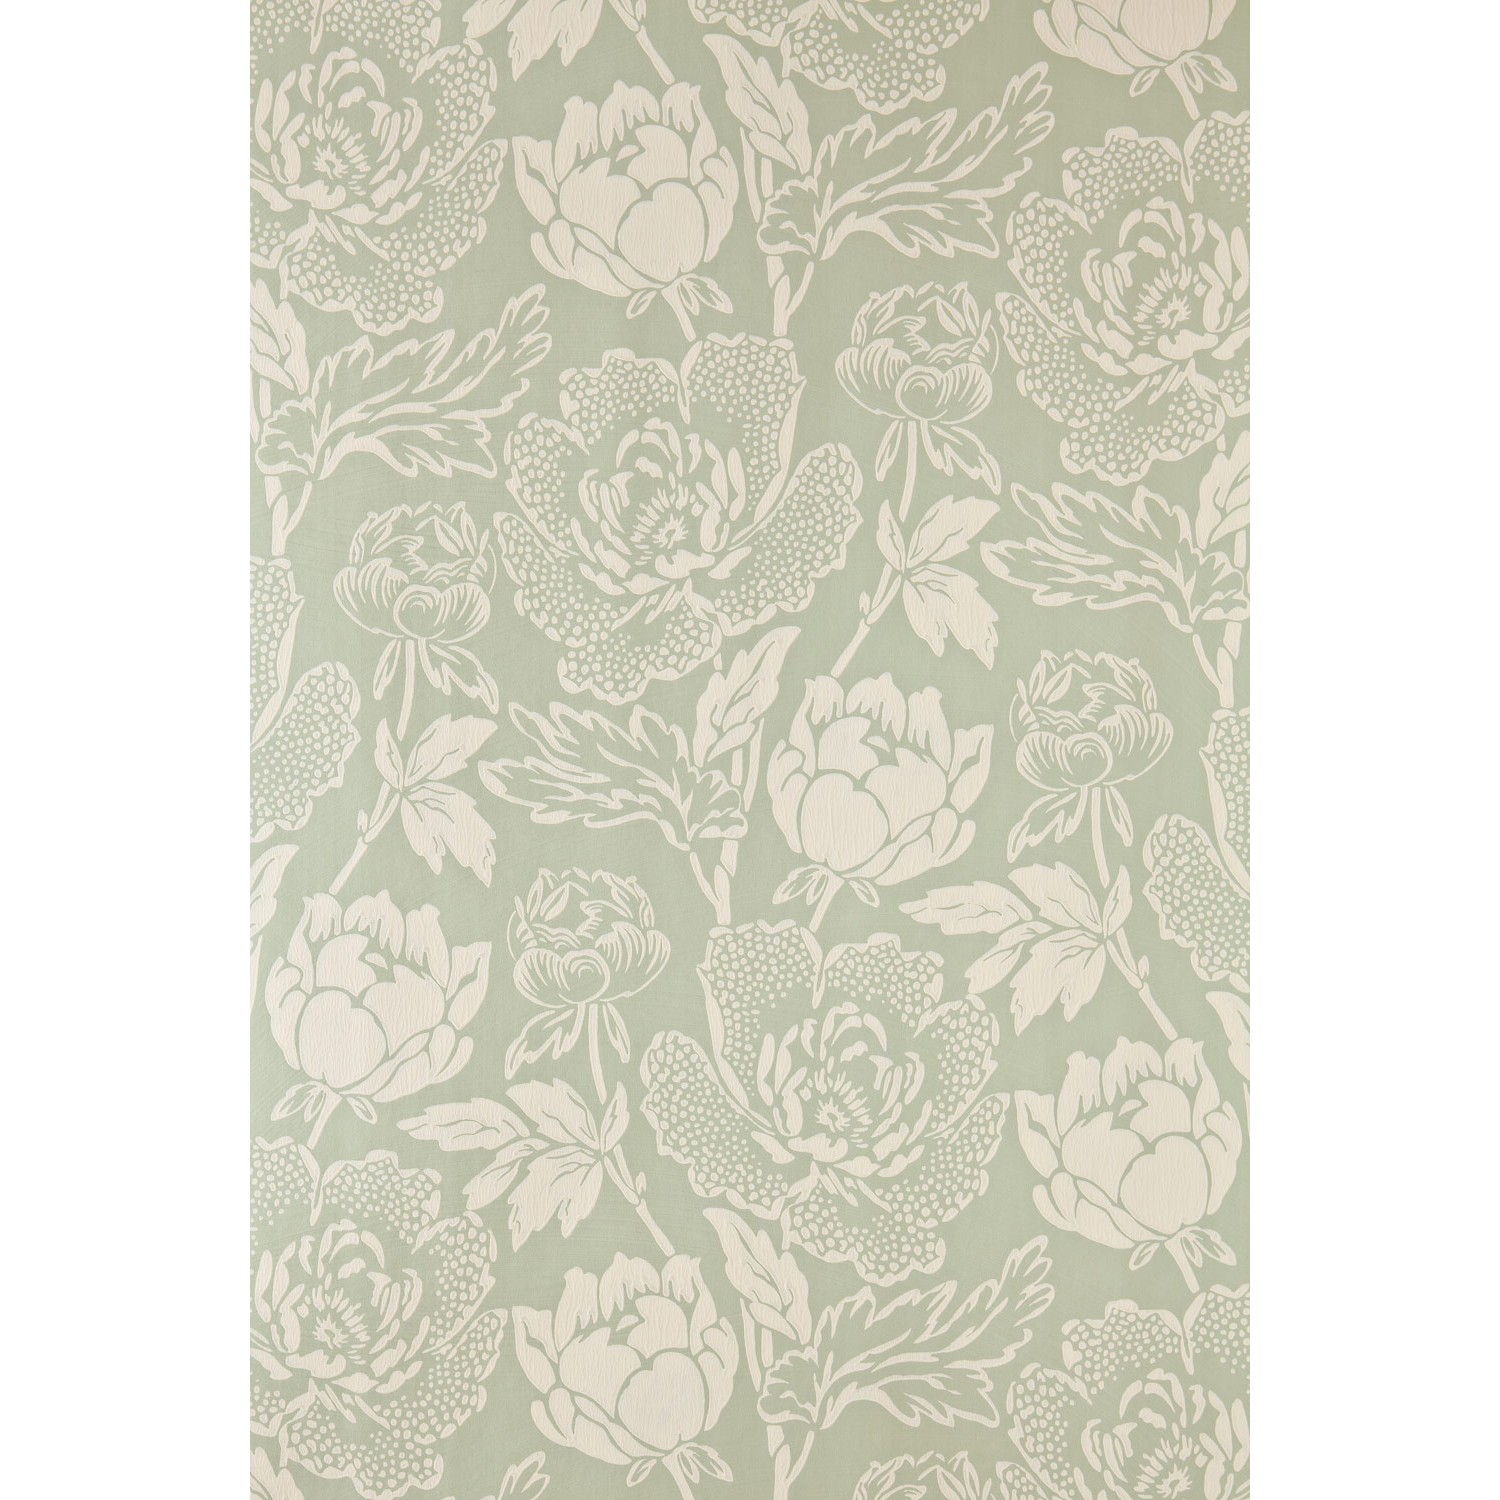 Farrow And Ball Peony Wallpaper 23-13, Pale Green